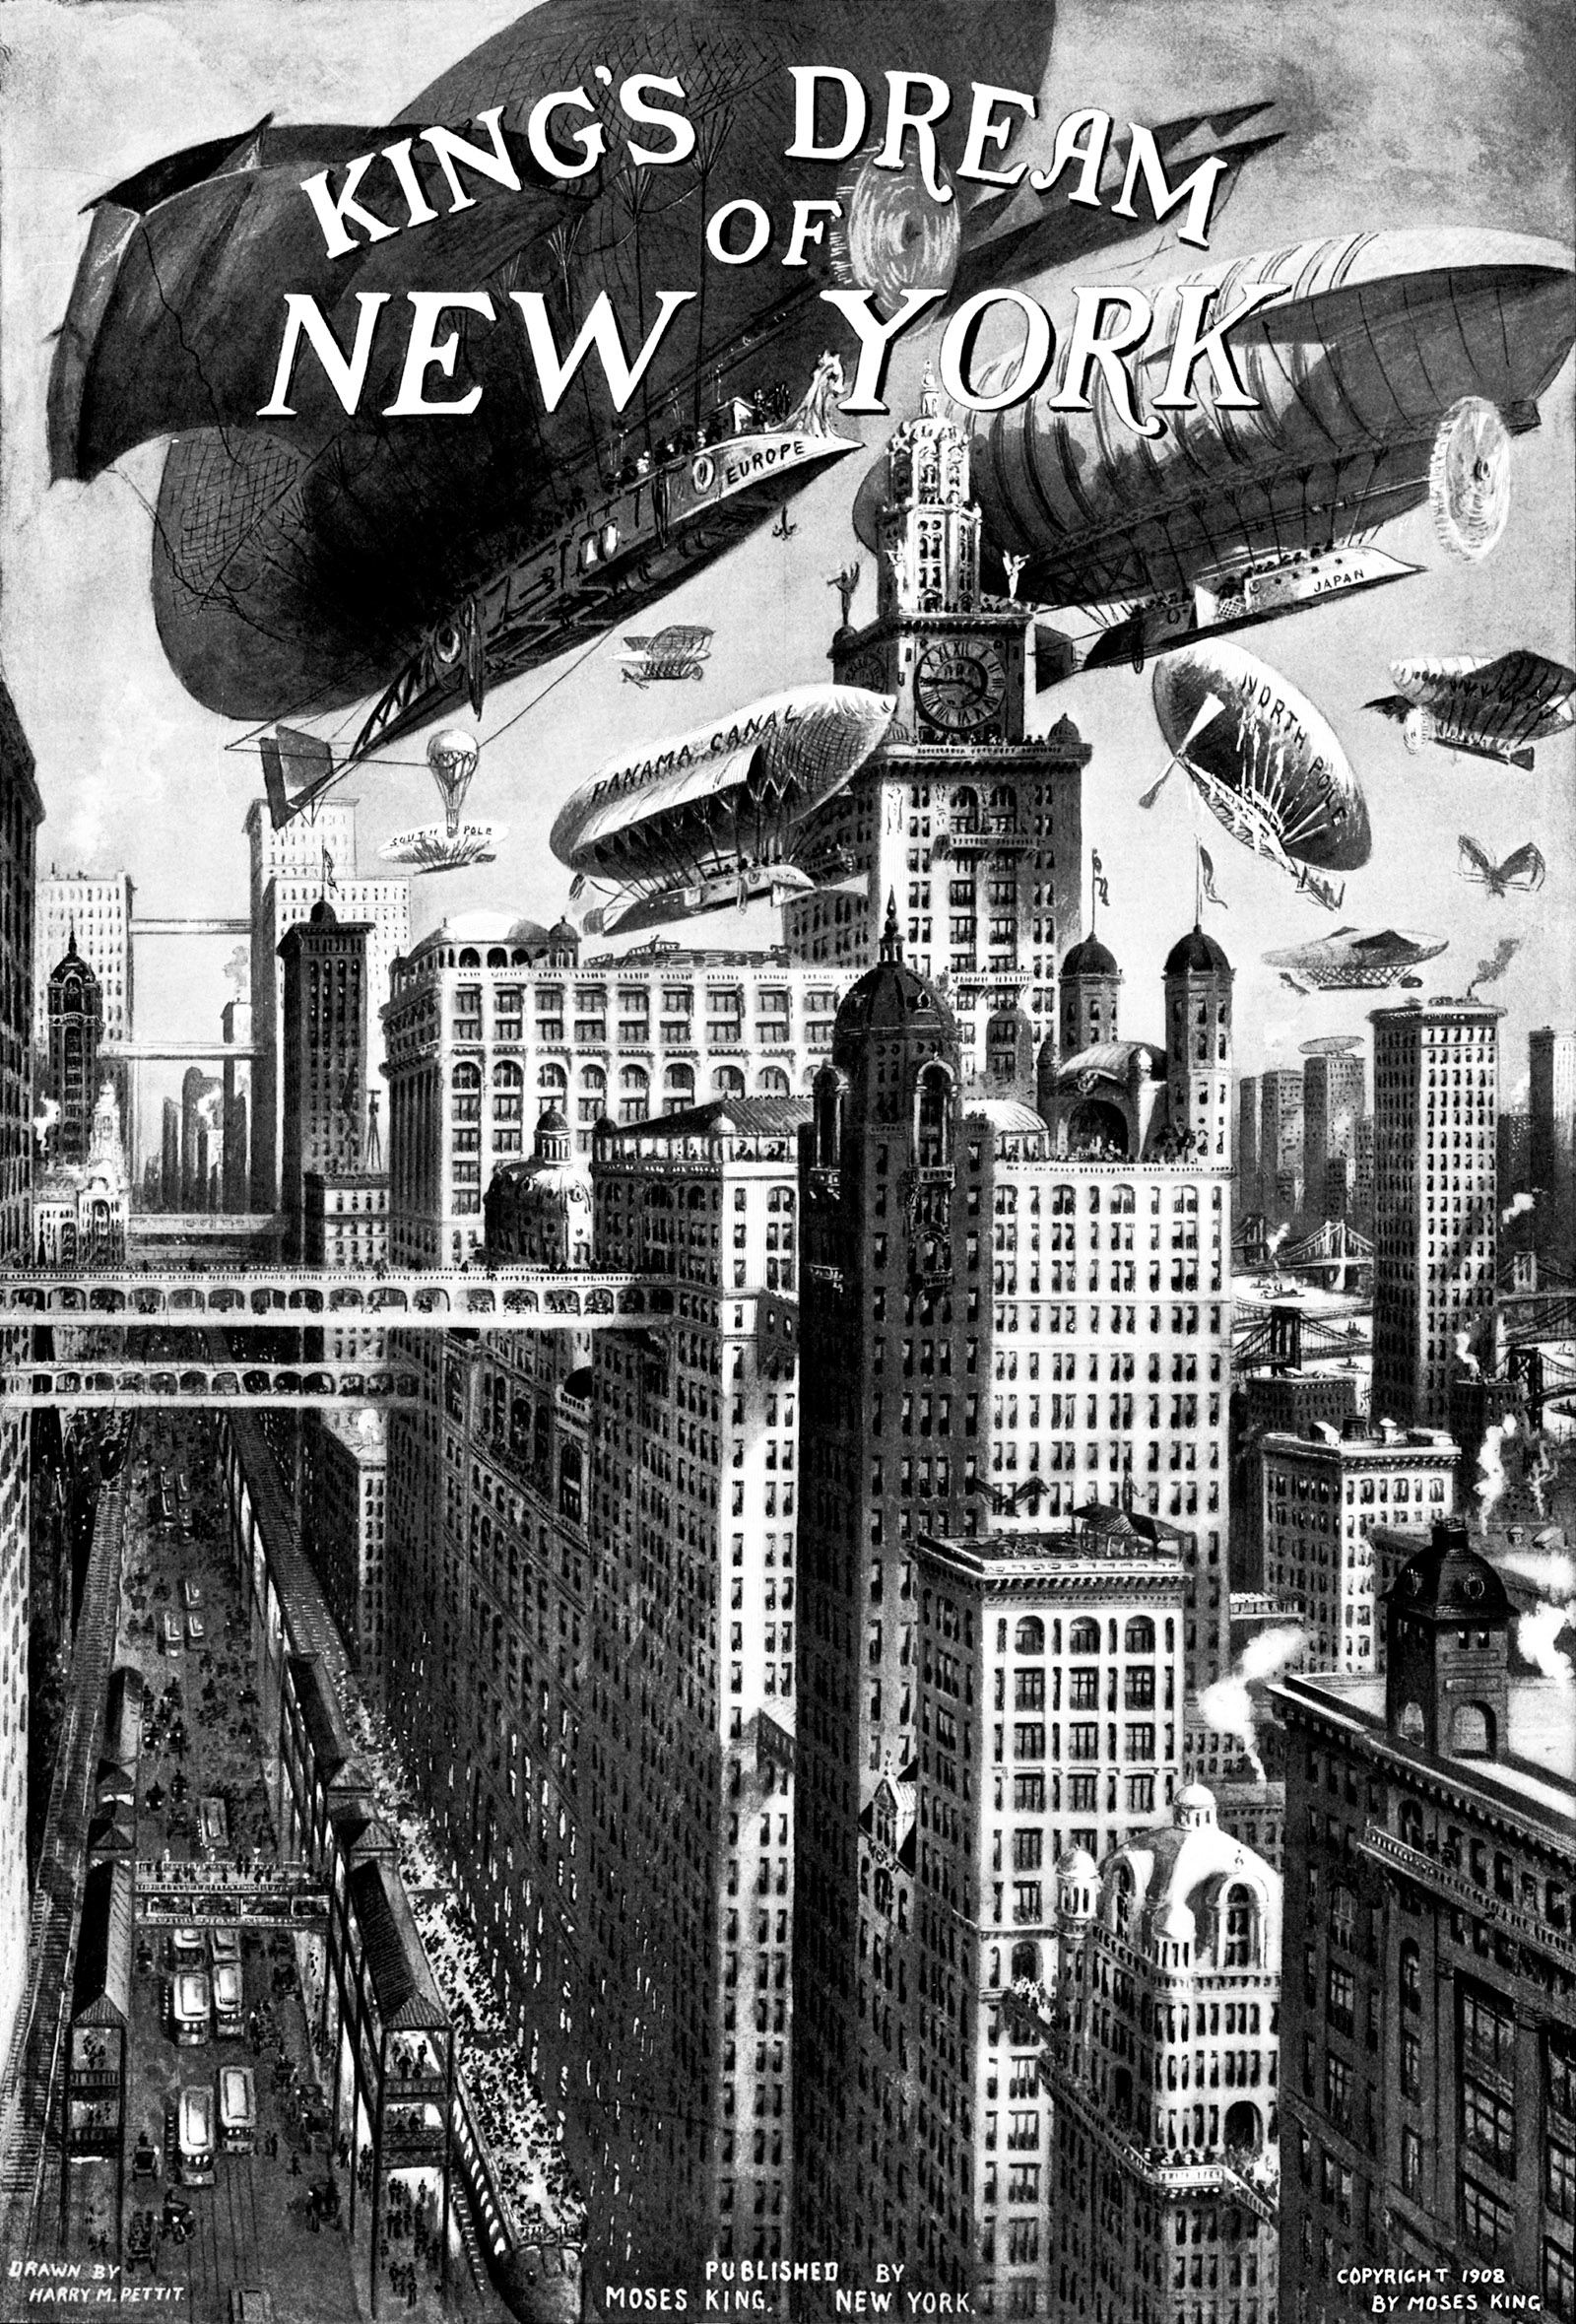 Illustration by Harry M. Pettit from Moses King's guidebook Views of New York, 1908